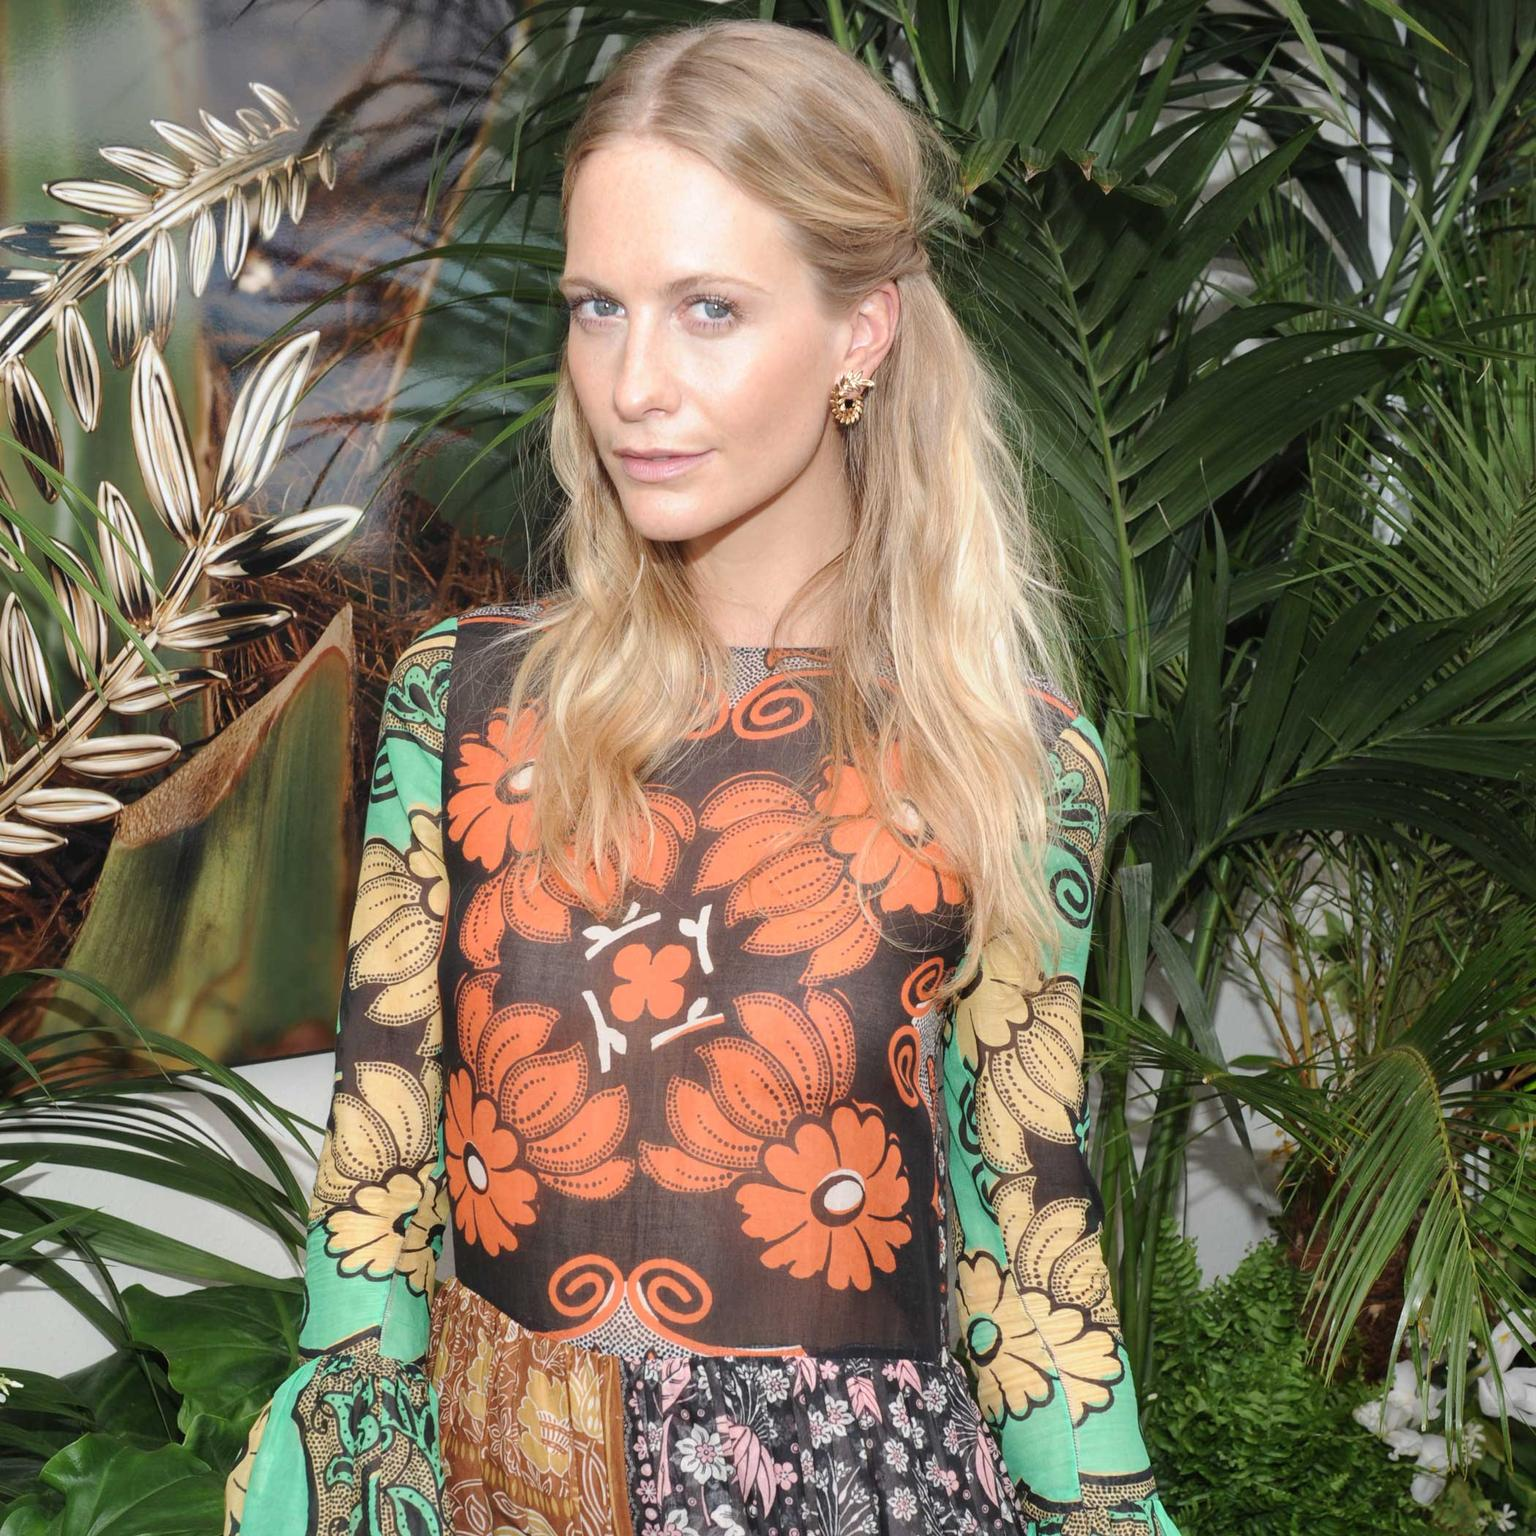 Poppy Delevingne in Chopard Palme Verte earrings